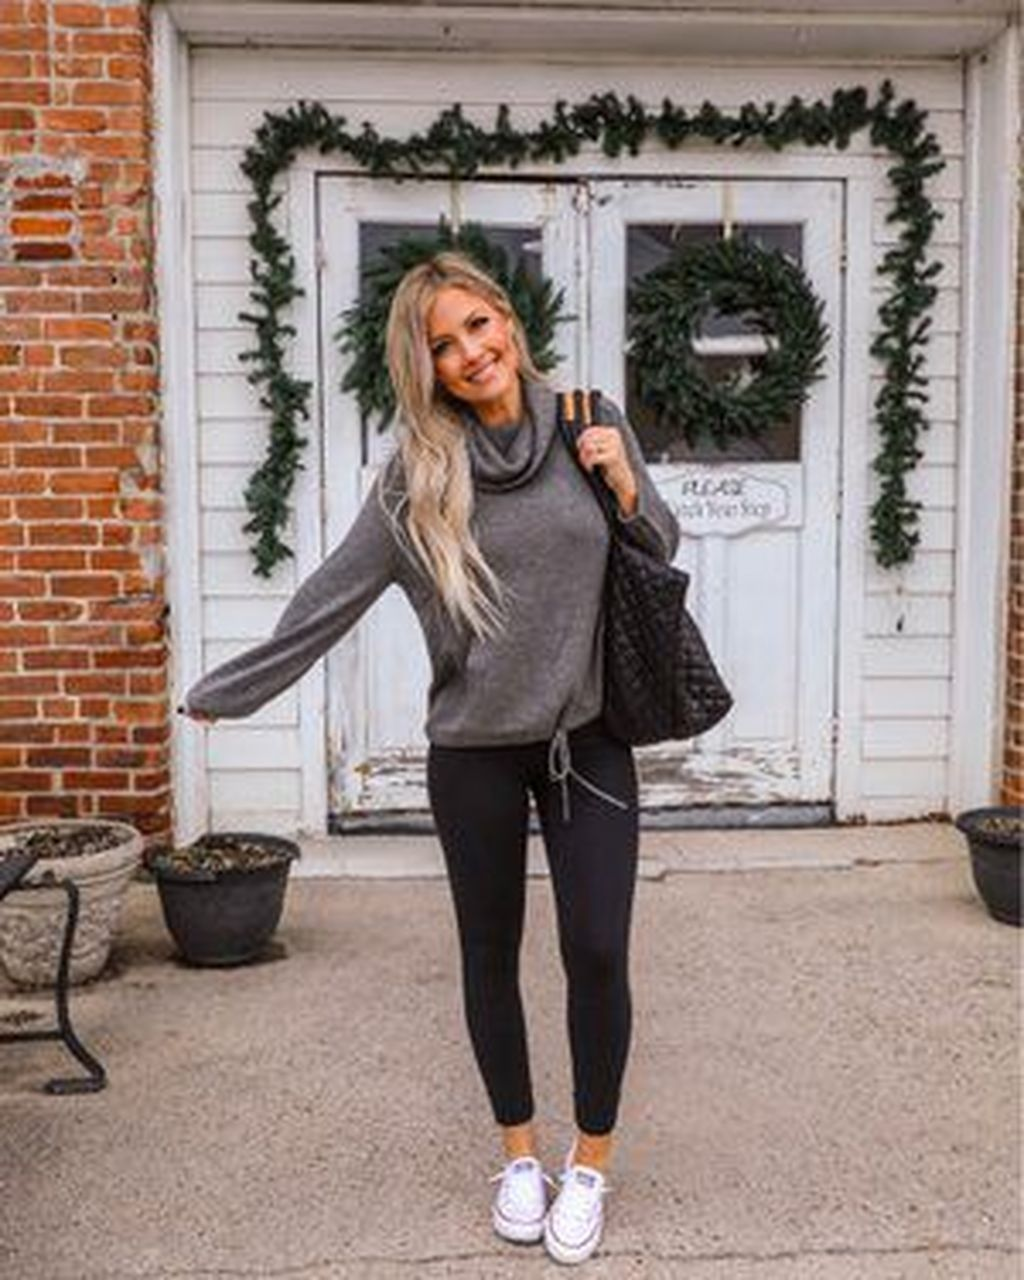 +38 Lovely Fall Outfits Ideas To Wear With Converse 2019  #maddyeuphoriaoutfits windsor, maddy euphoria outfits.Daily Fall Trends Ideas Wear. #maddyeuphoriaoutfits +38 Lovely Fall Outfits Ideas To Wear With Converse 2019  #maddyeuphoriaoutfits windsor, maddy euphoria outfits.Daily Fall Trends Ideas Wear. #maddyeuphoriaoutfits +38 Lovely Fall Outfits Ideas To Wear With Converse 2019  #maddyeuphoriaoutfits windsor, maddy euphoria outfits.Daily Fall Trends Ideas Wear. #maddyeuphoriaoutfits +38 Love #maddyeuphoriaoutfits